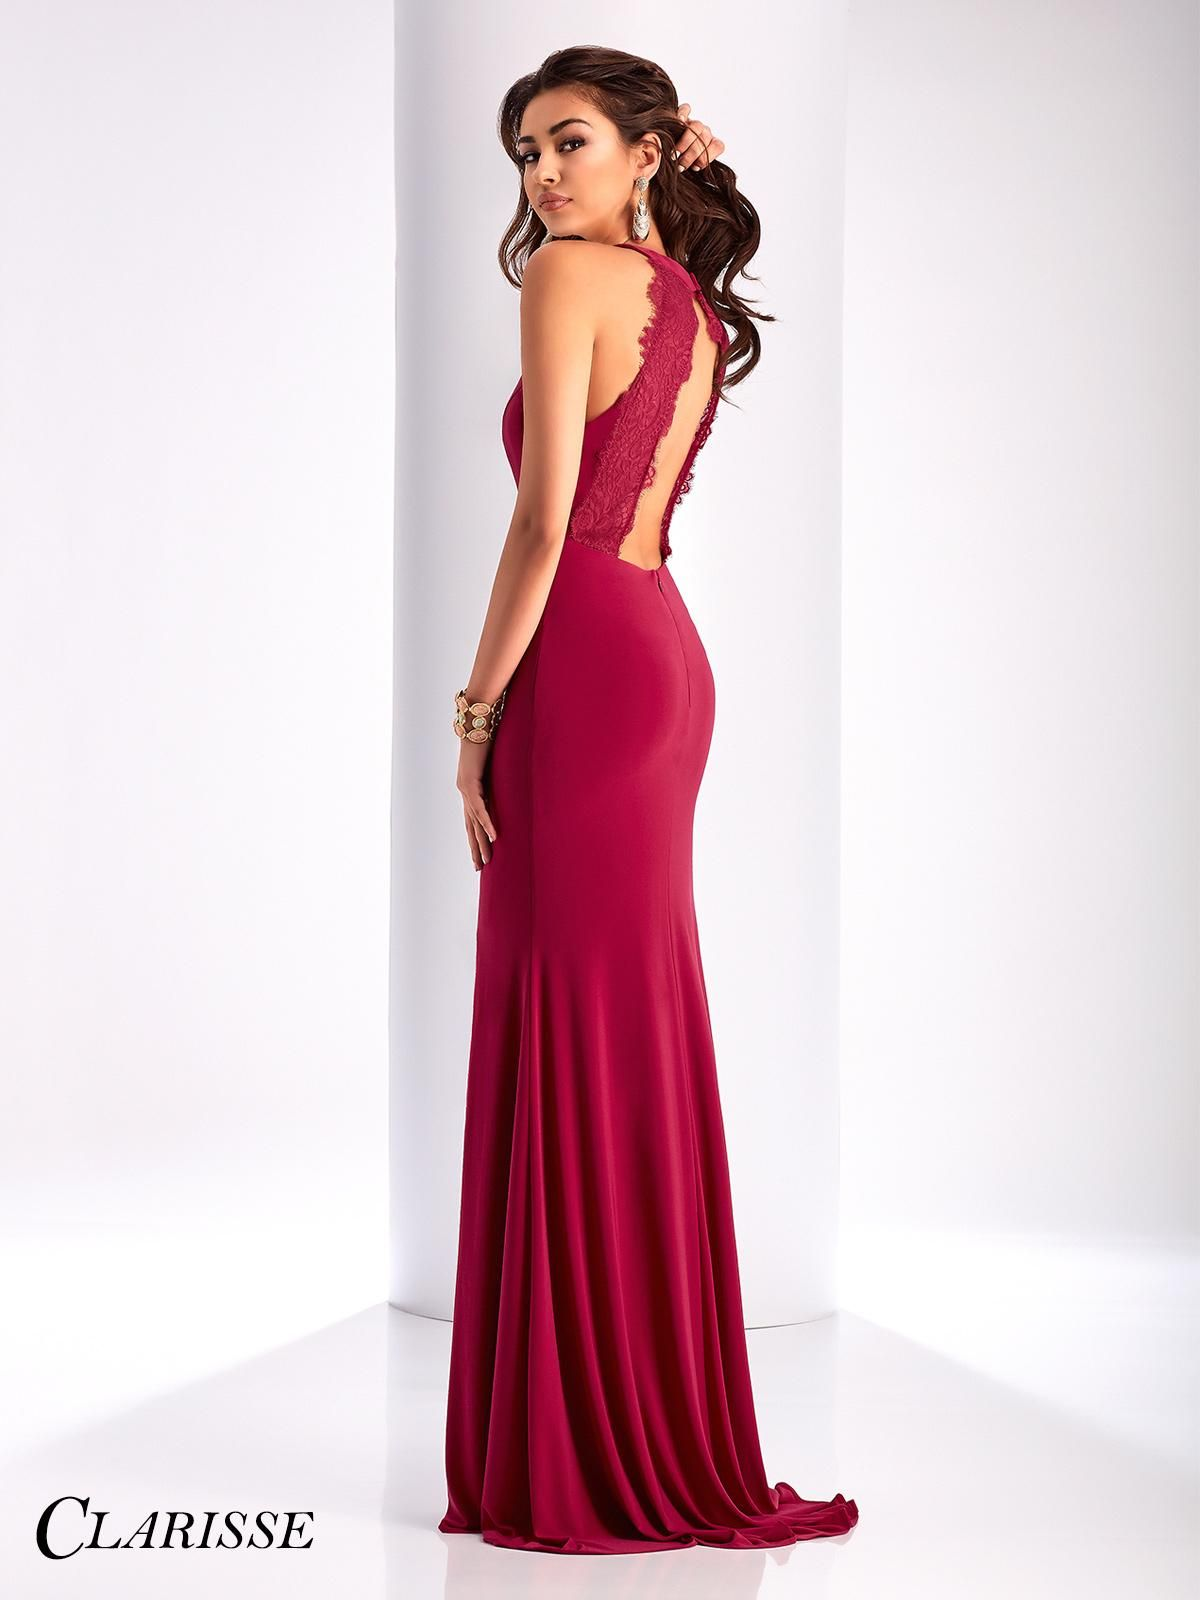 69a71d426d4 Simple Clarisse 2017 Prom Dress Style 3048. If you don t like all of the  sparkle